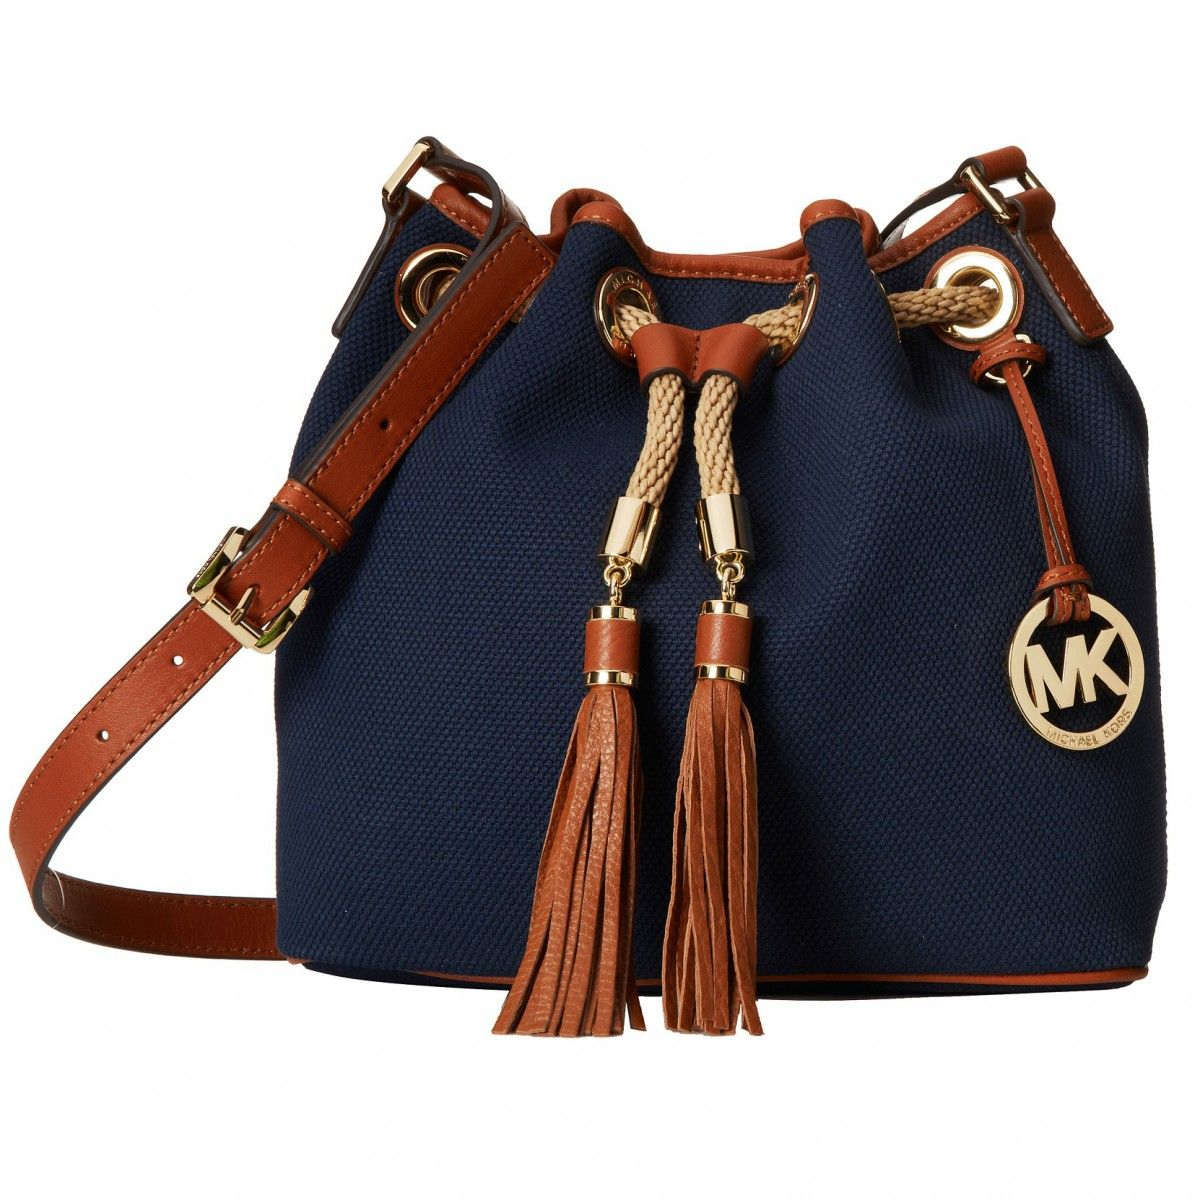 gr ner online shop michael kors tasche marina in navy michael kors pinterest michael kors. Black Bedroom Furniture Sets. Home Design Ideas